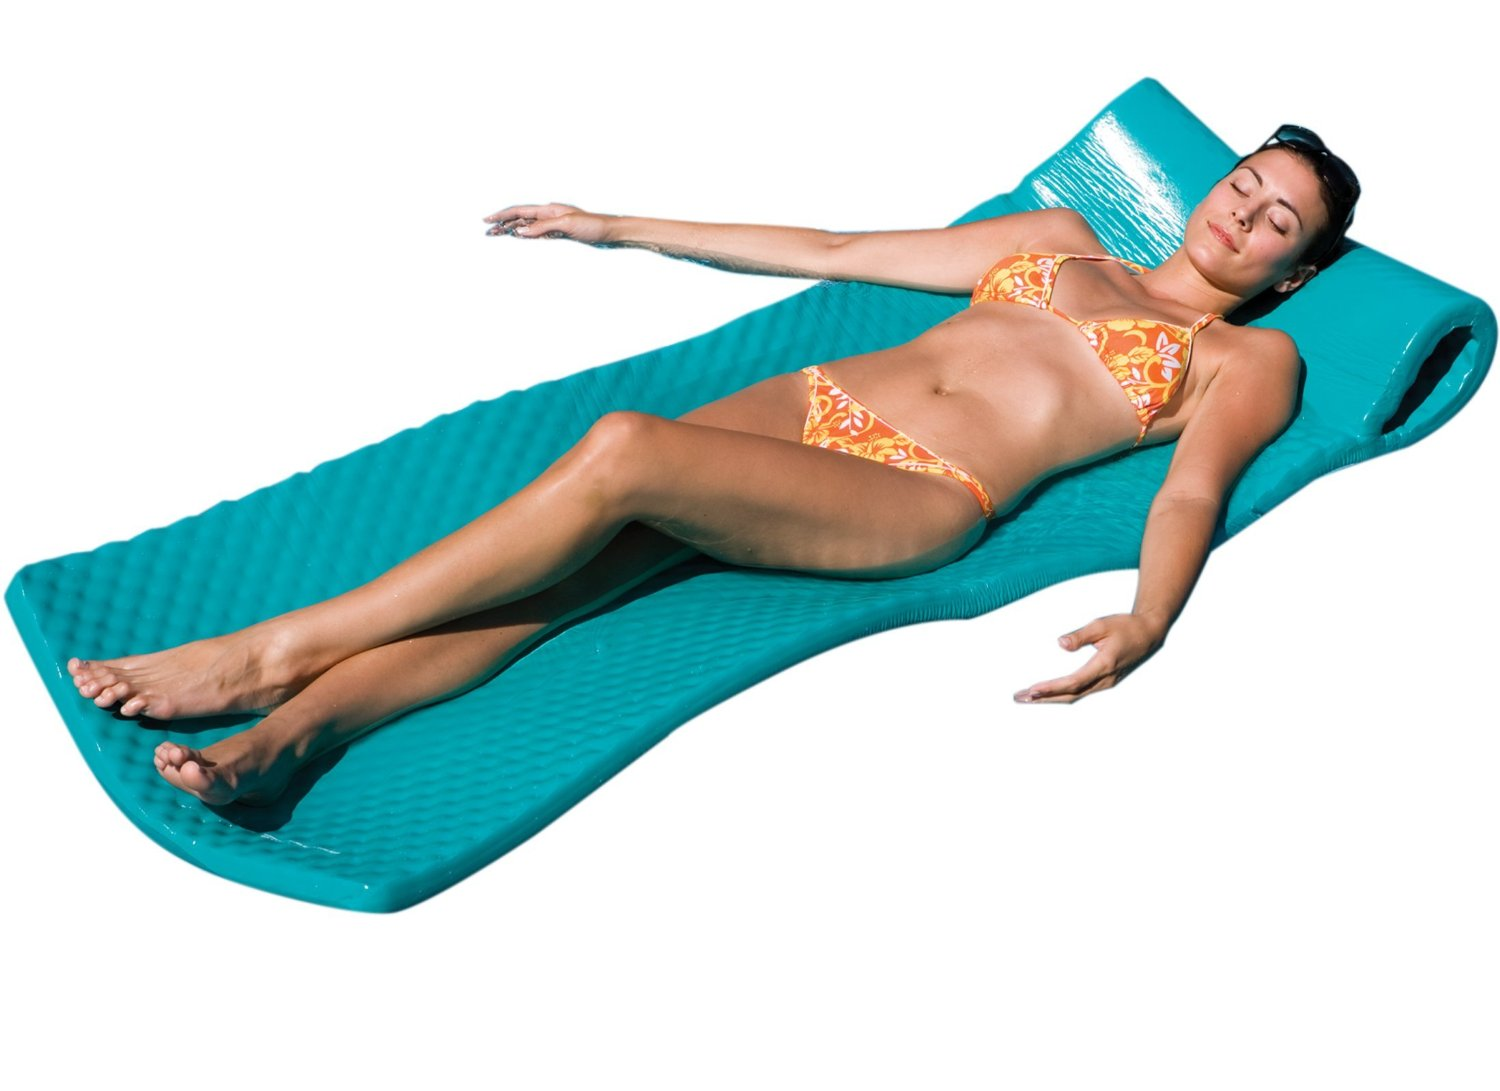 10 Best Swimming Pool Loungers 2017 - Pool Lounge Float Chair Reviews